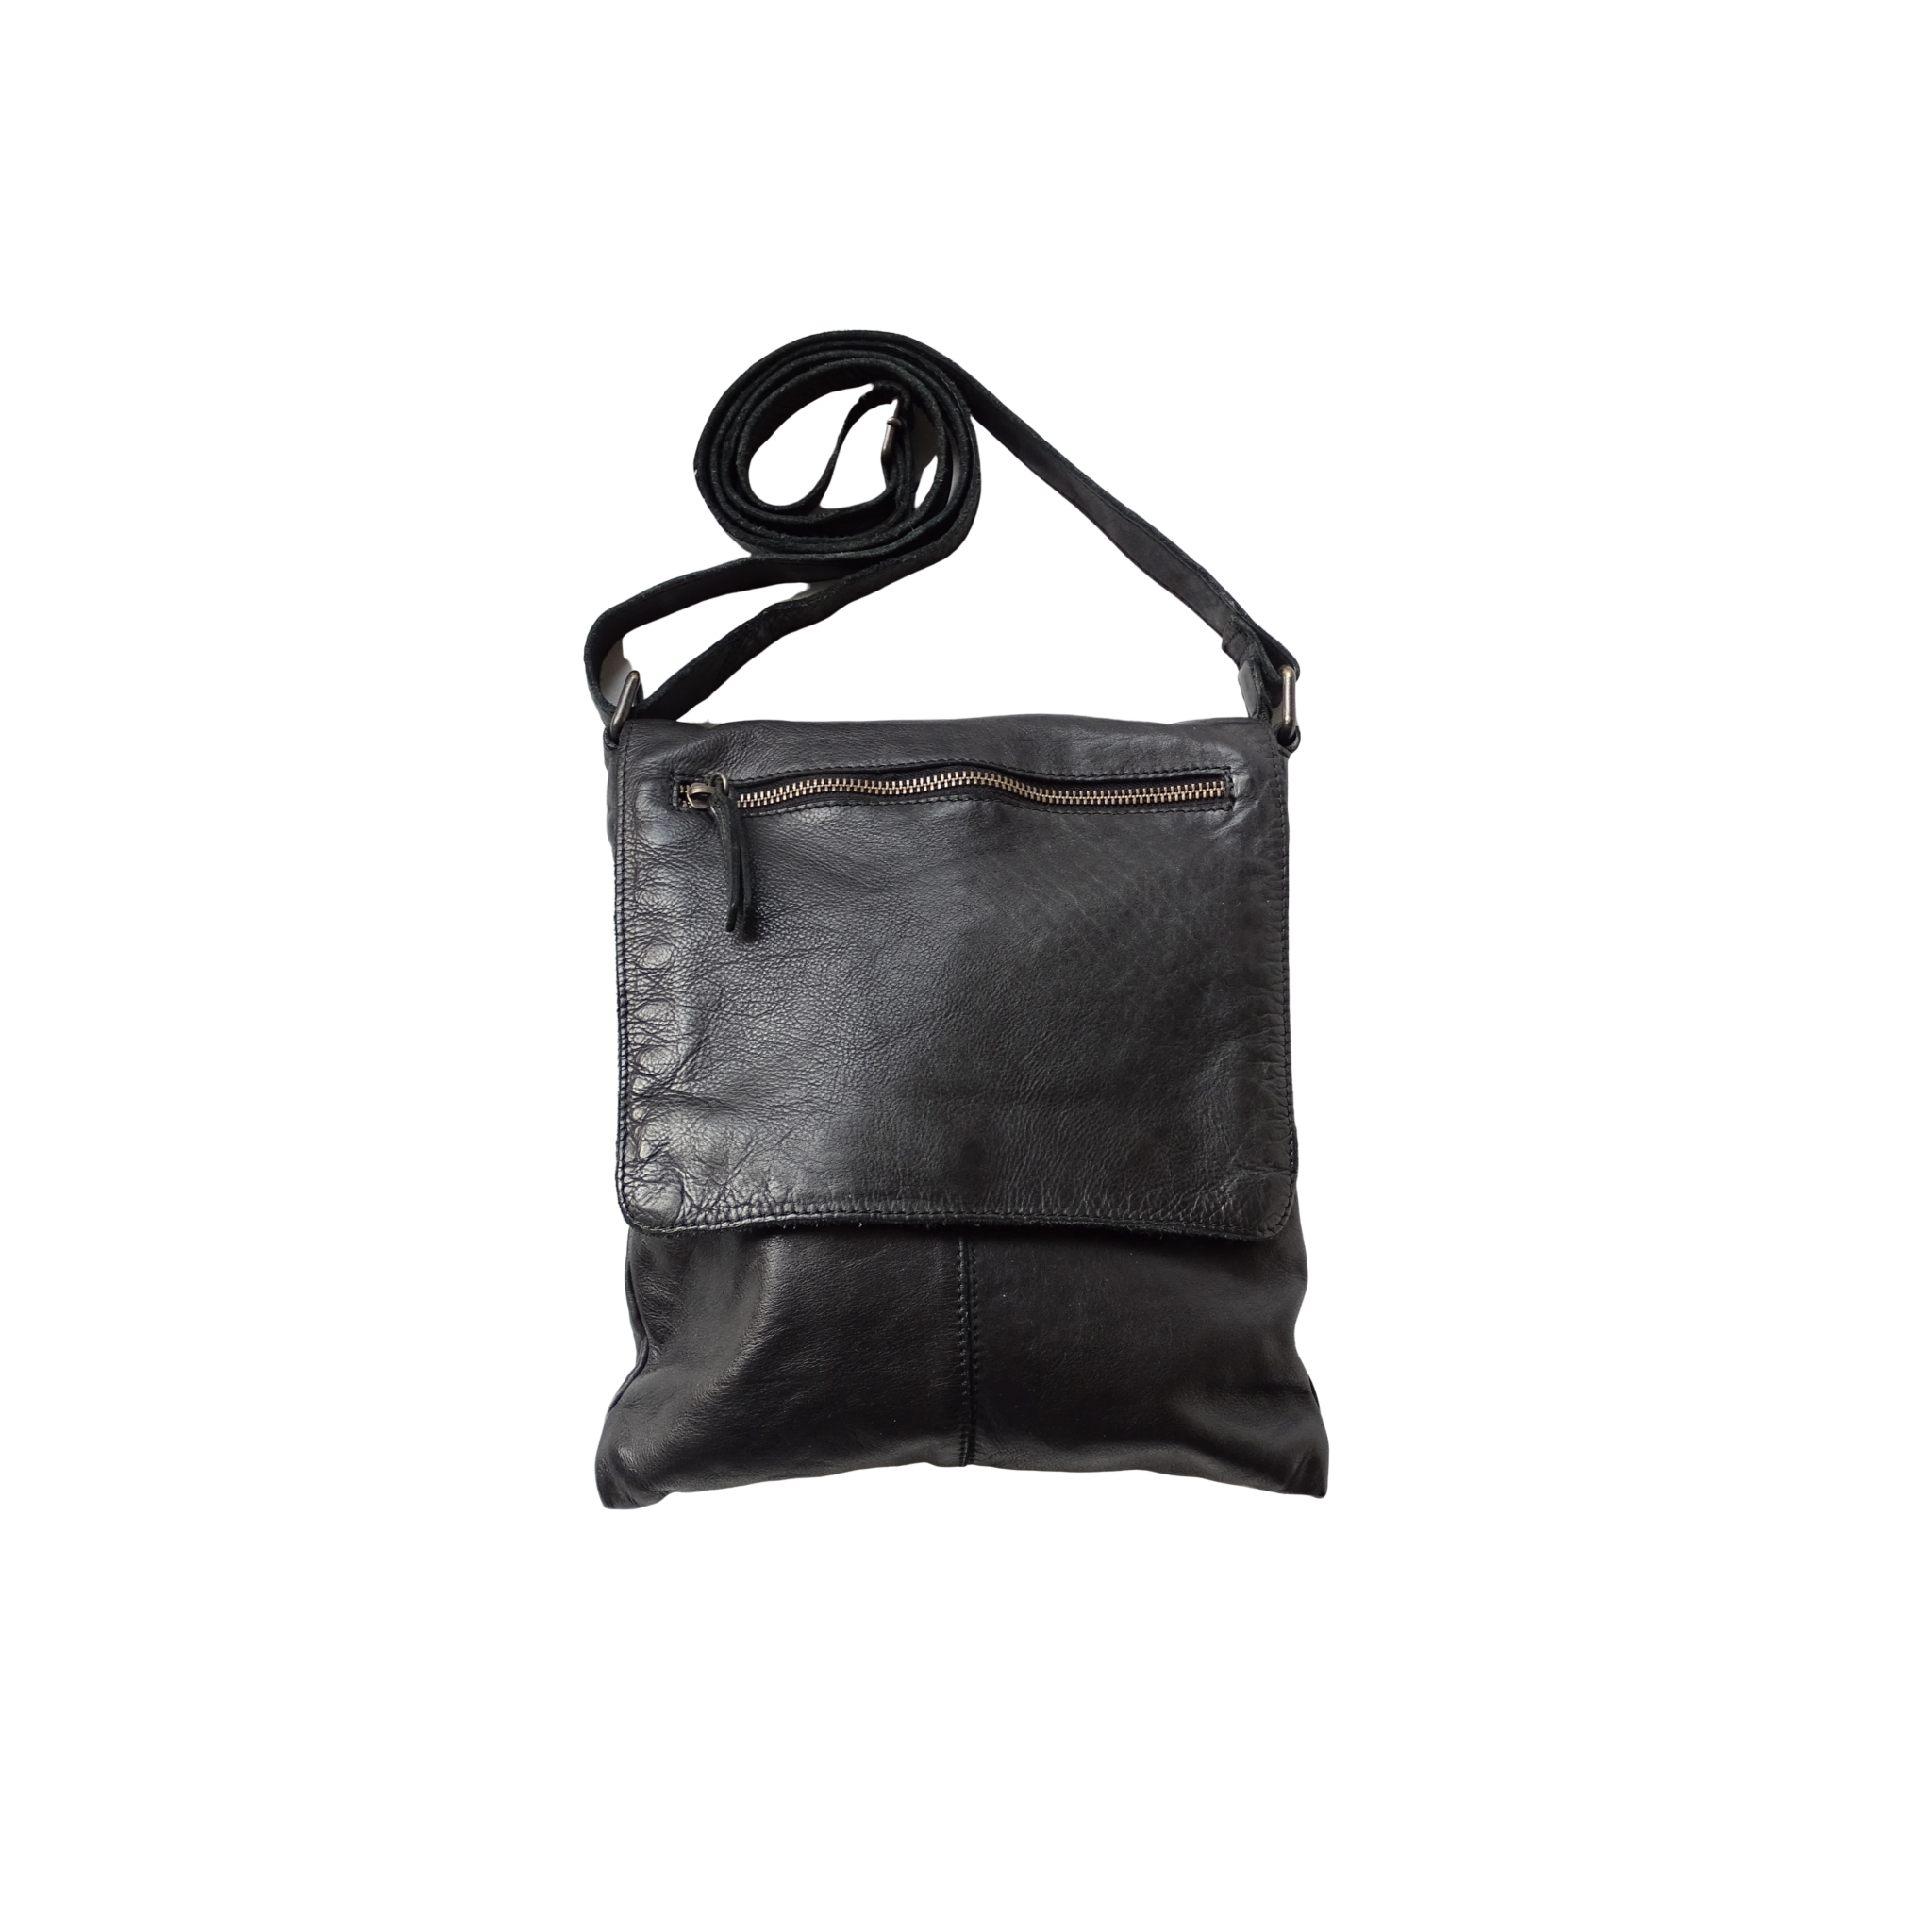 The Trend The Trend black cross-body bag (4202740)